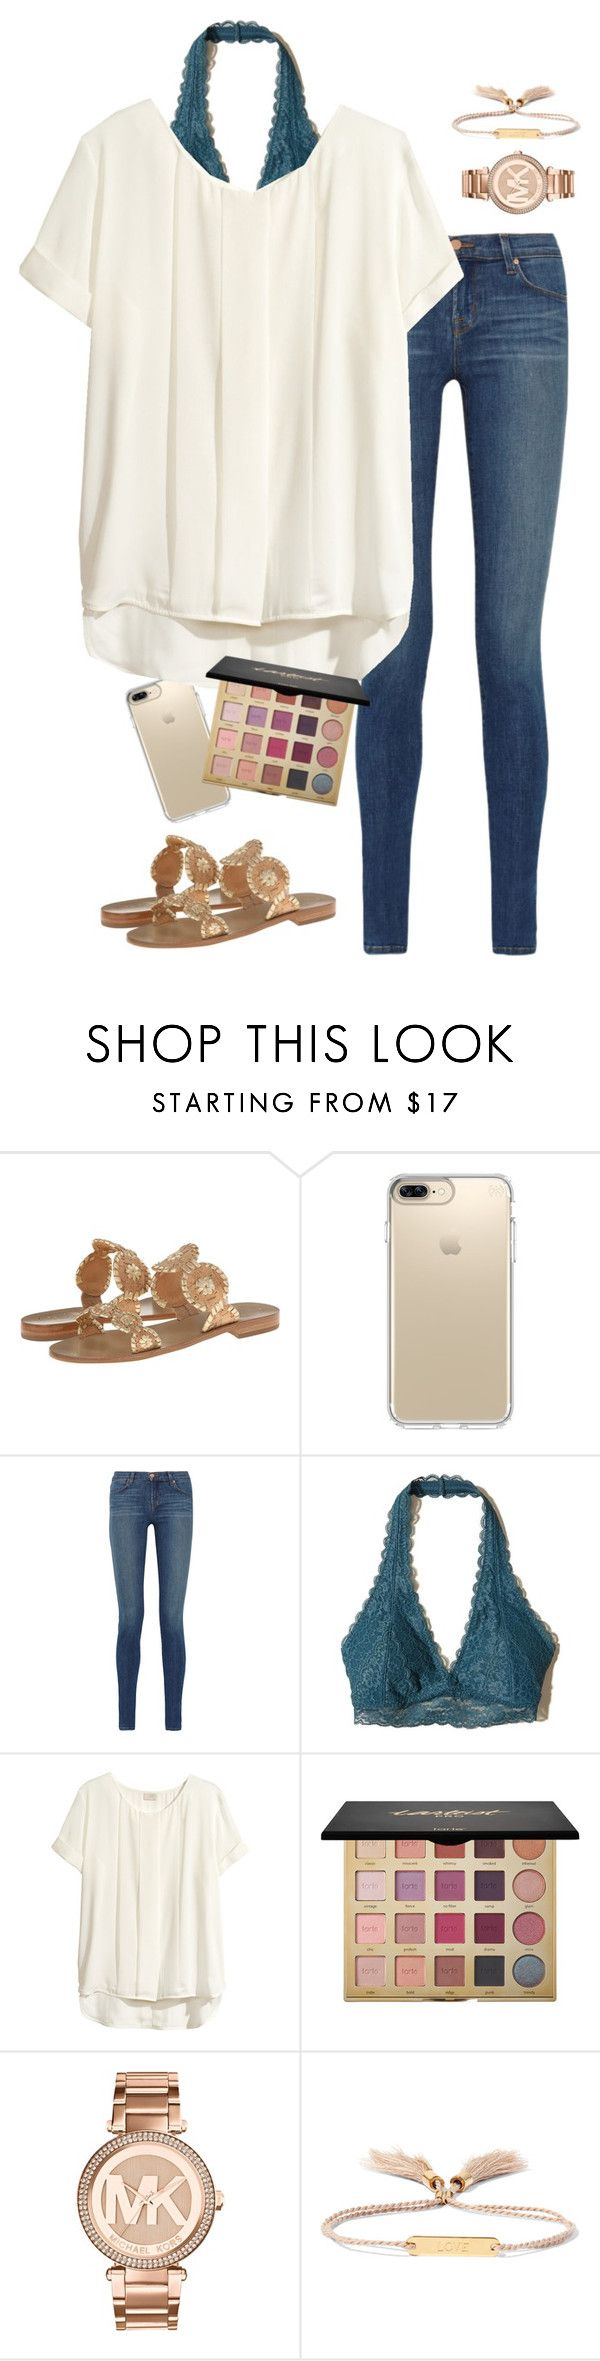 """I wish it was spring/ outfit #13"" by haleypowell0110 ❤ liked on Polyvore featuring Jack Rogers, Speck, J Brand, Hollister Co., H&M, tarte, Michael Kors and Chloé"